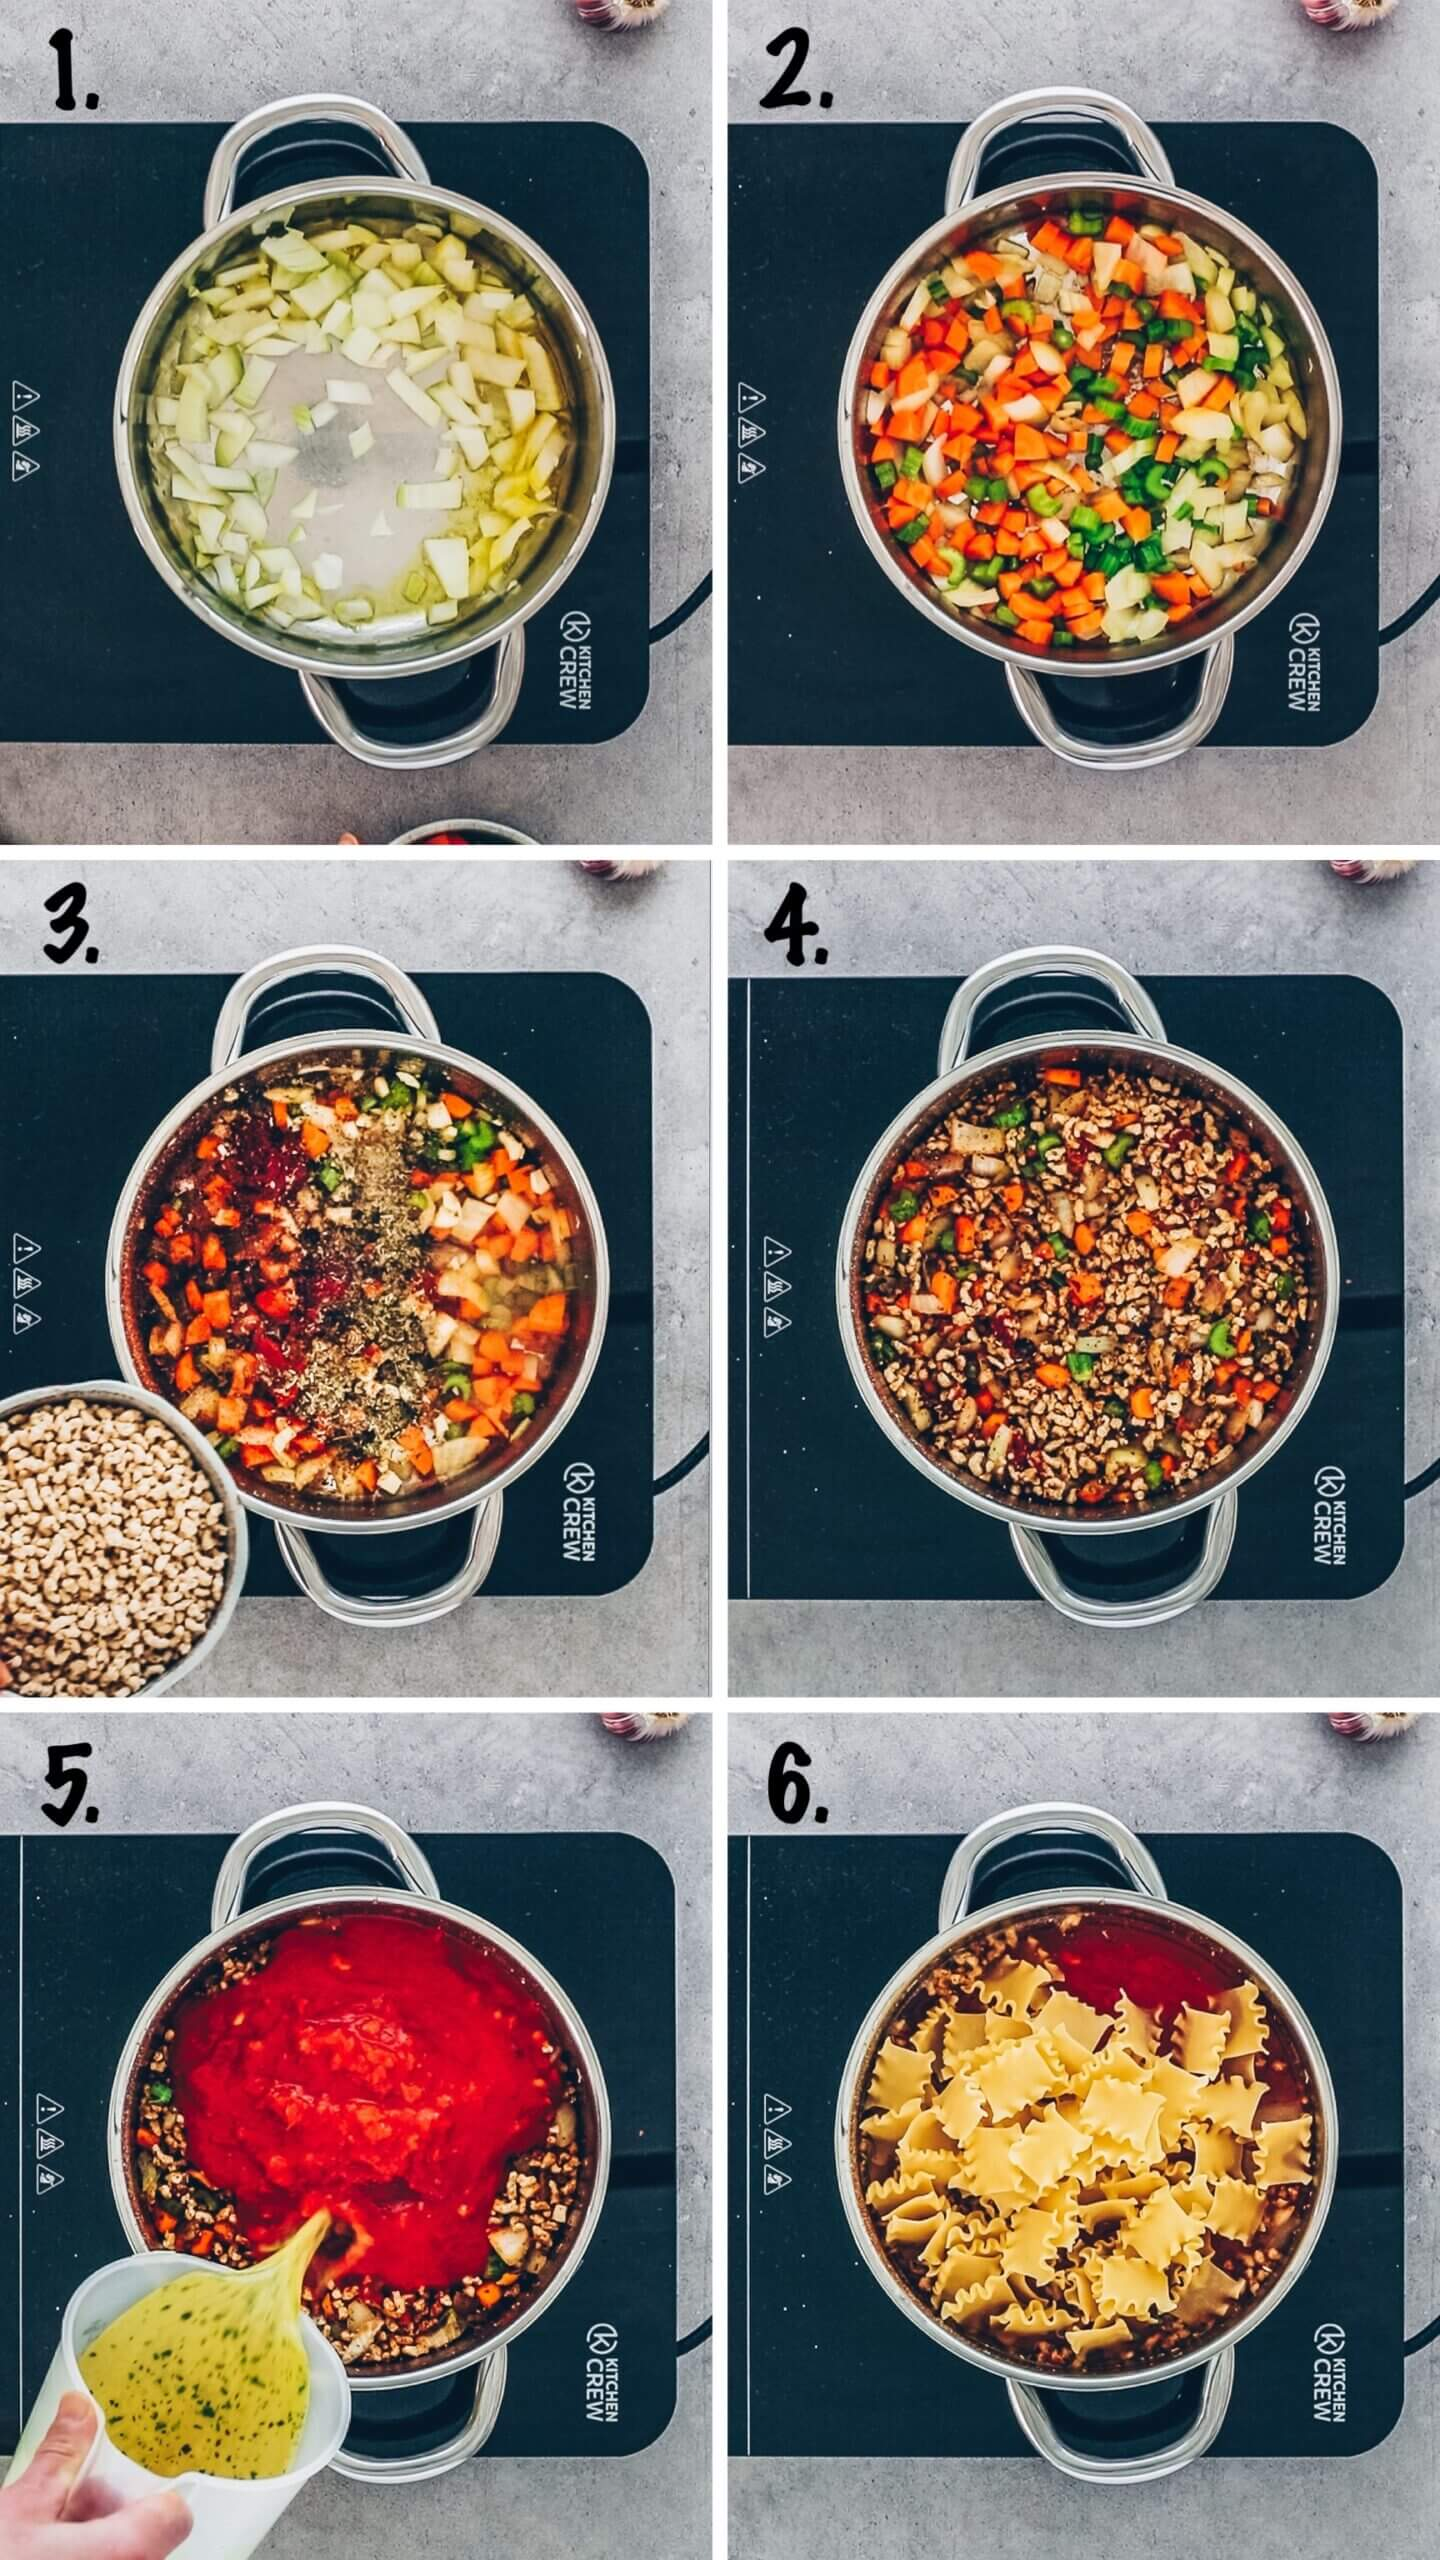 Vegan Lasagna Soup step-by-step instructions